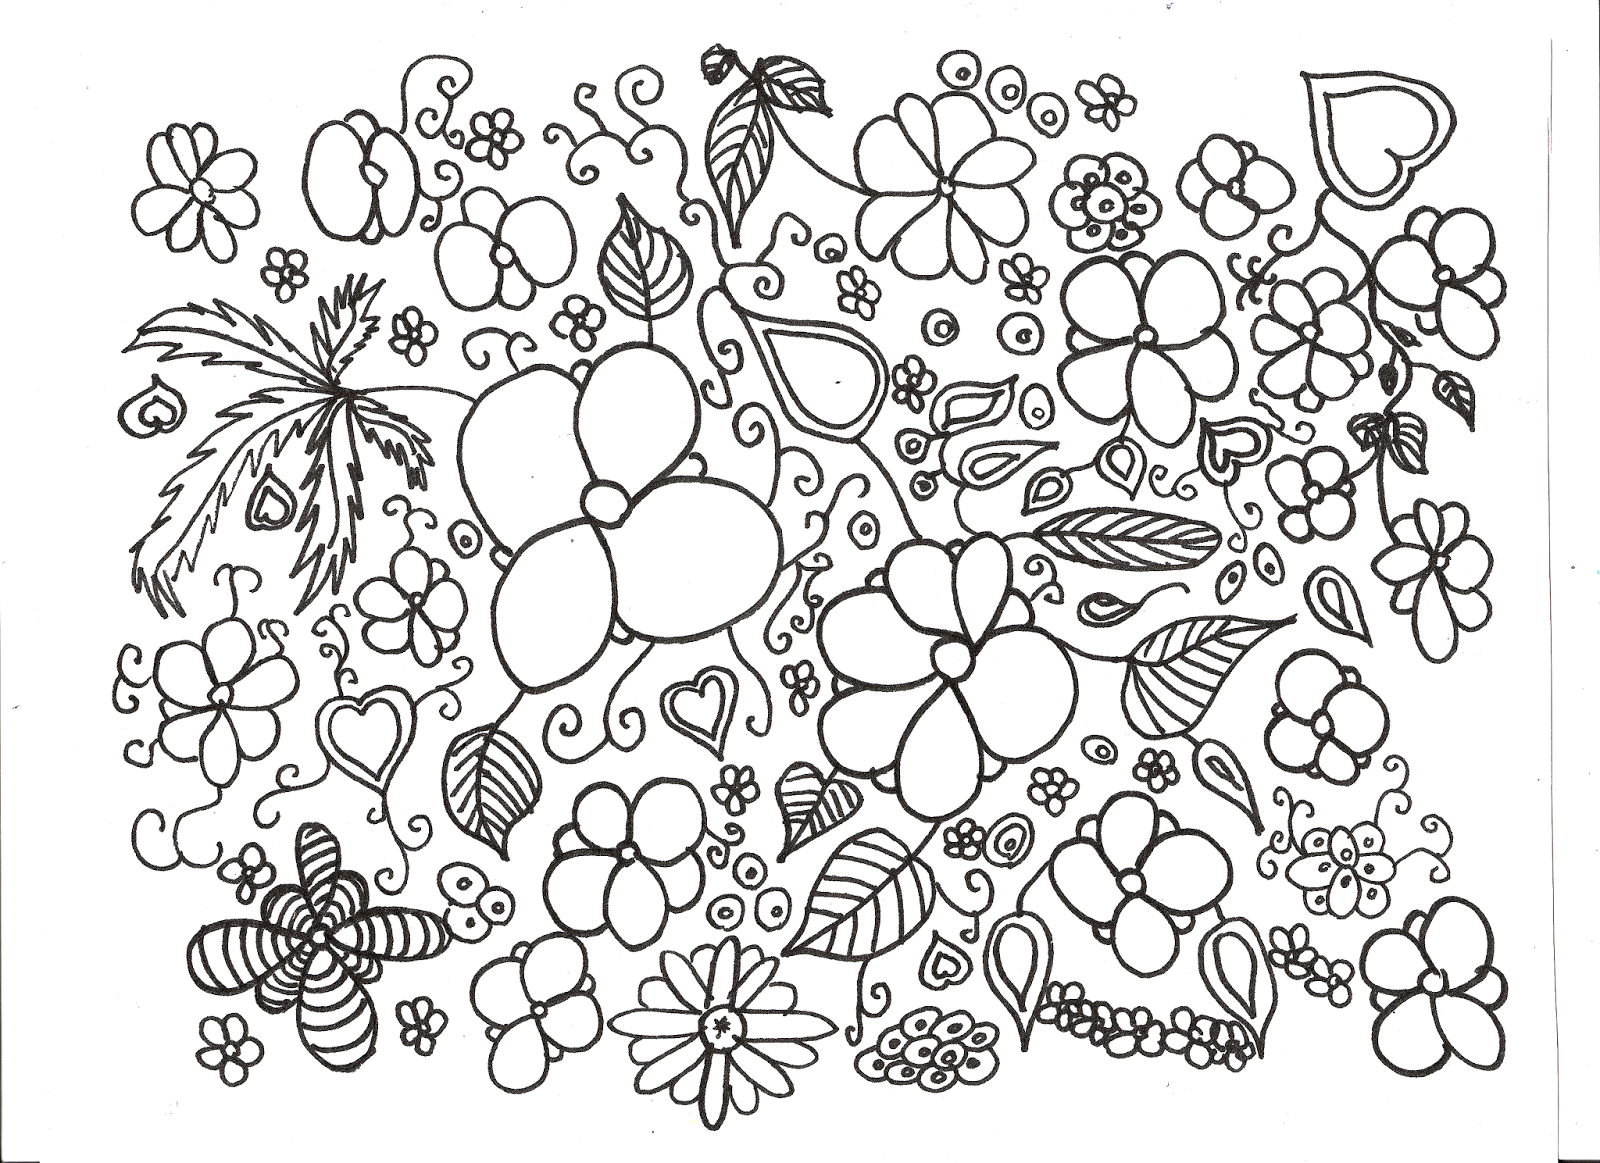 Art Coloriages difficiles pour adultes